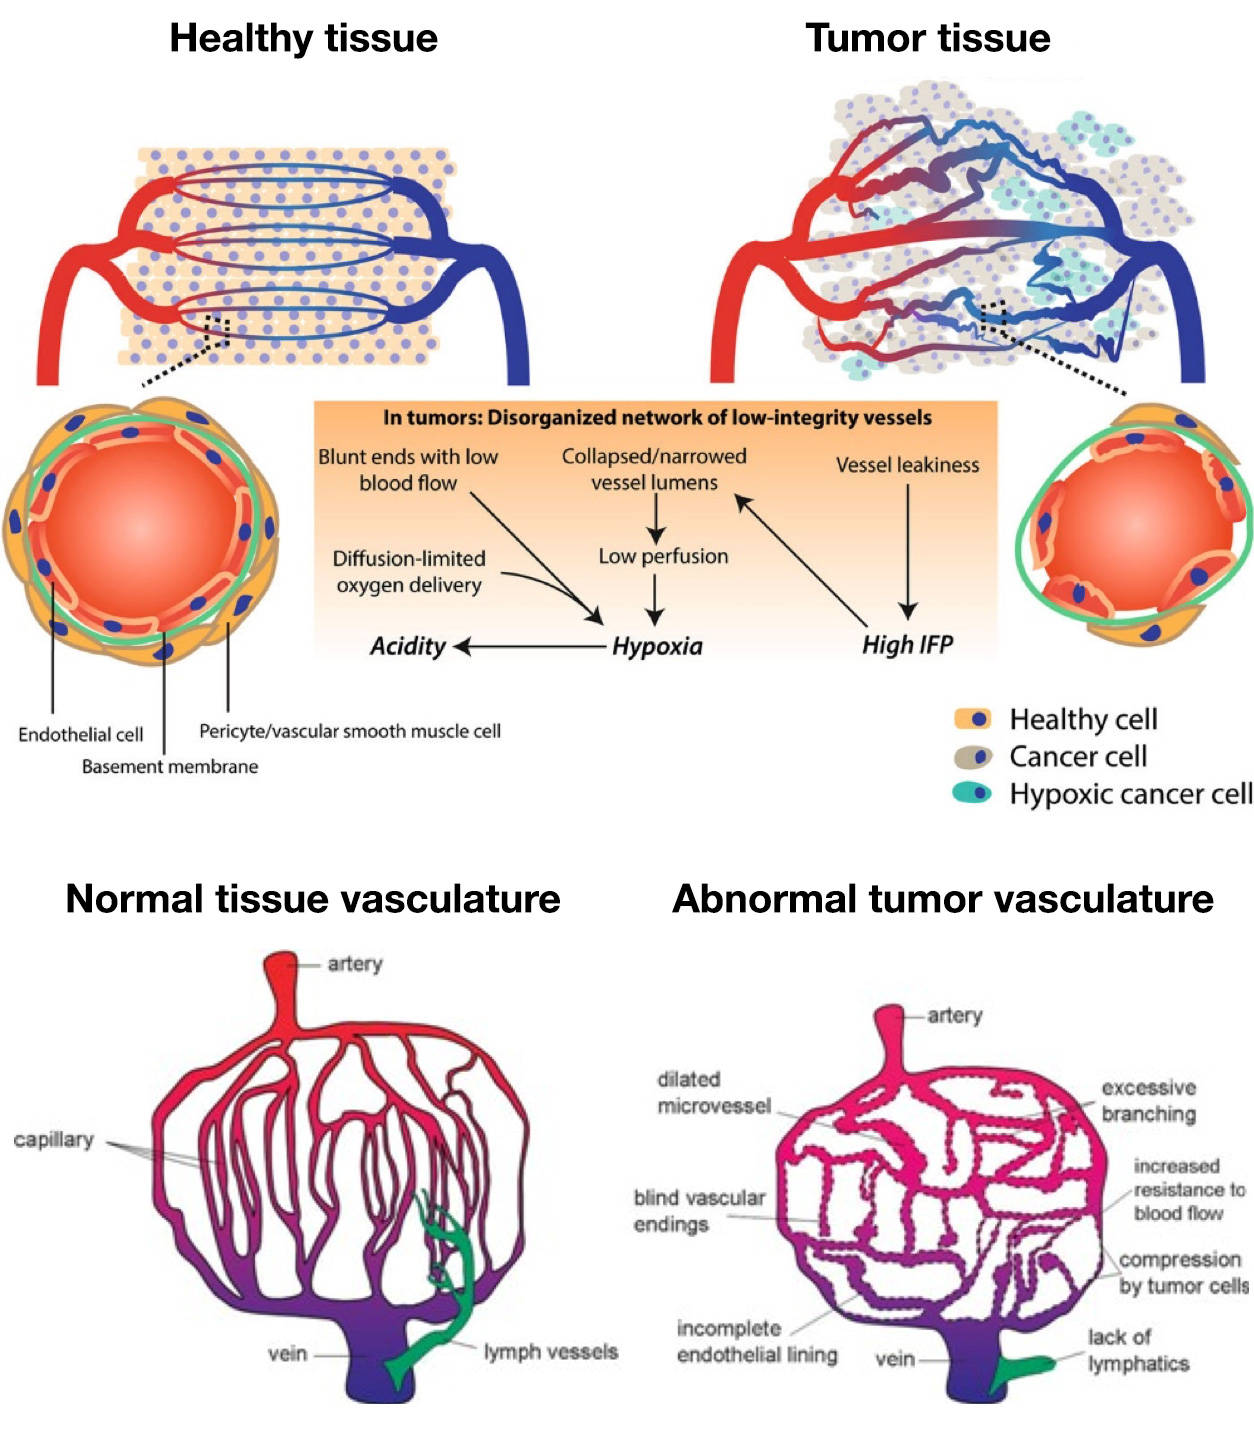 s1p Schematic representation of tumor vasculature abnormalities